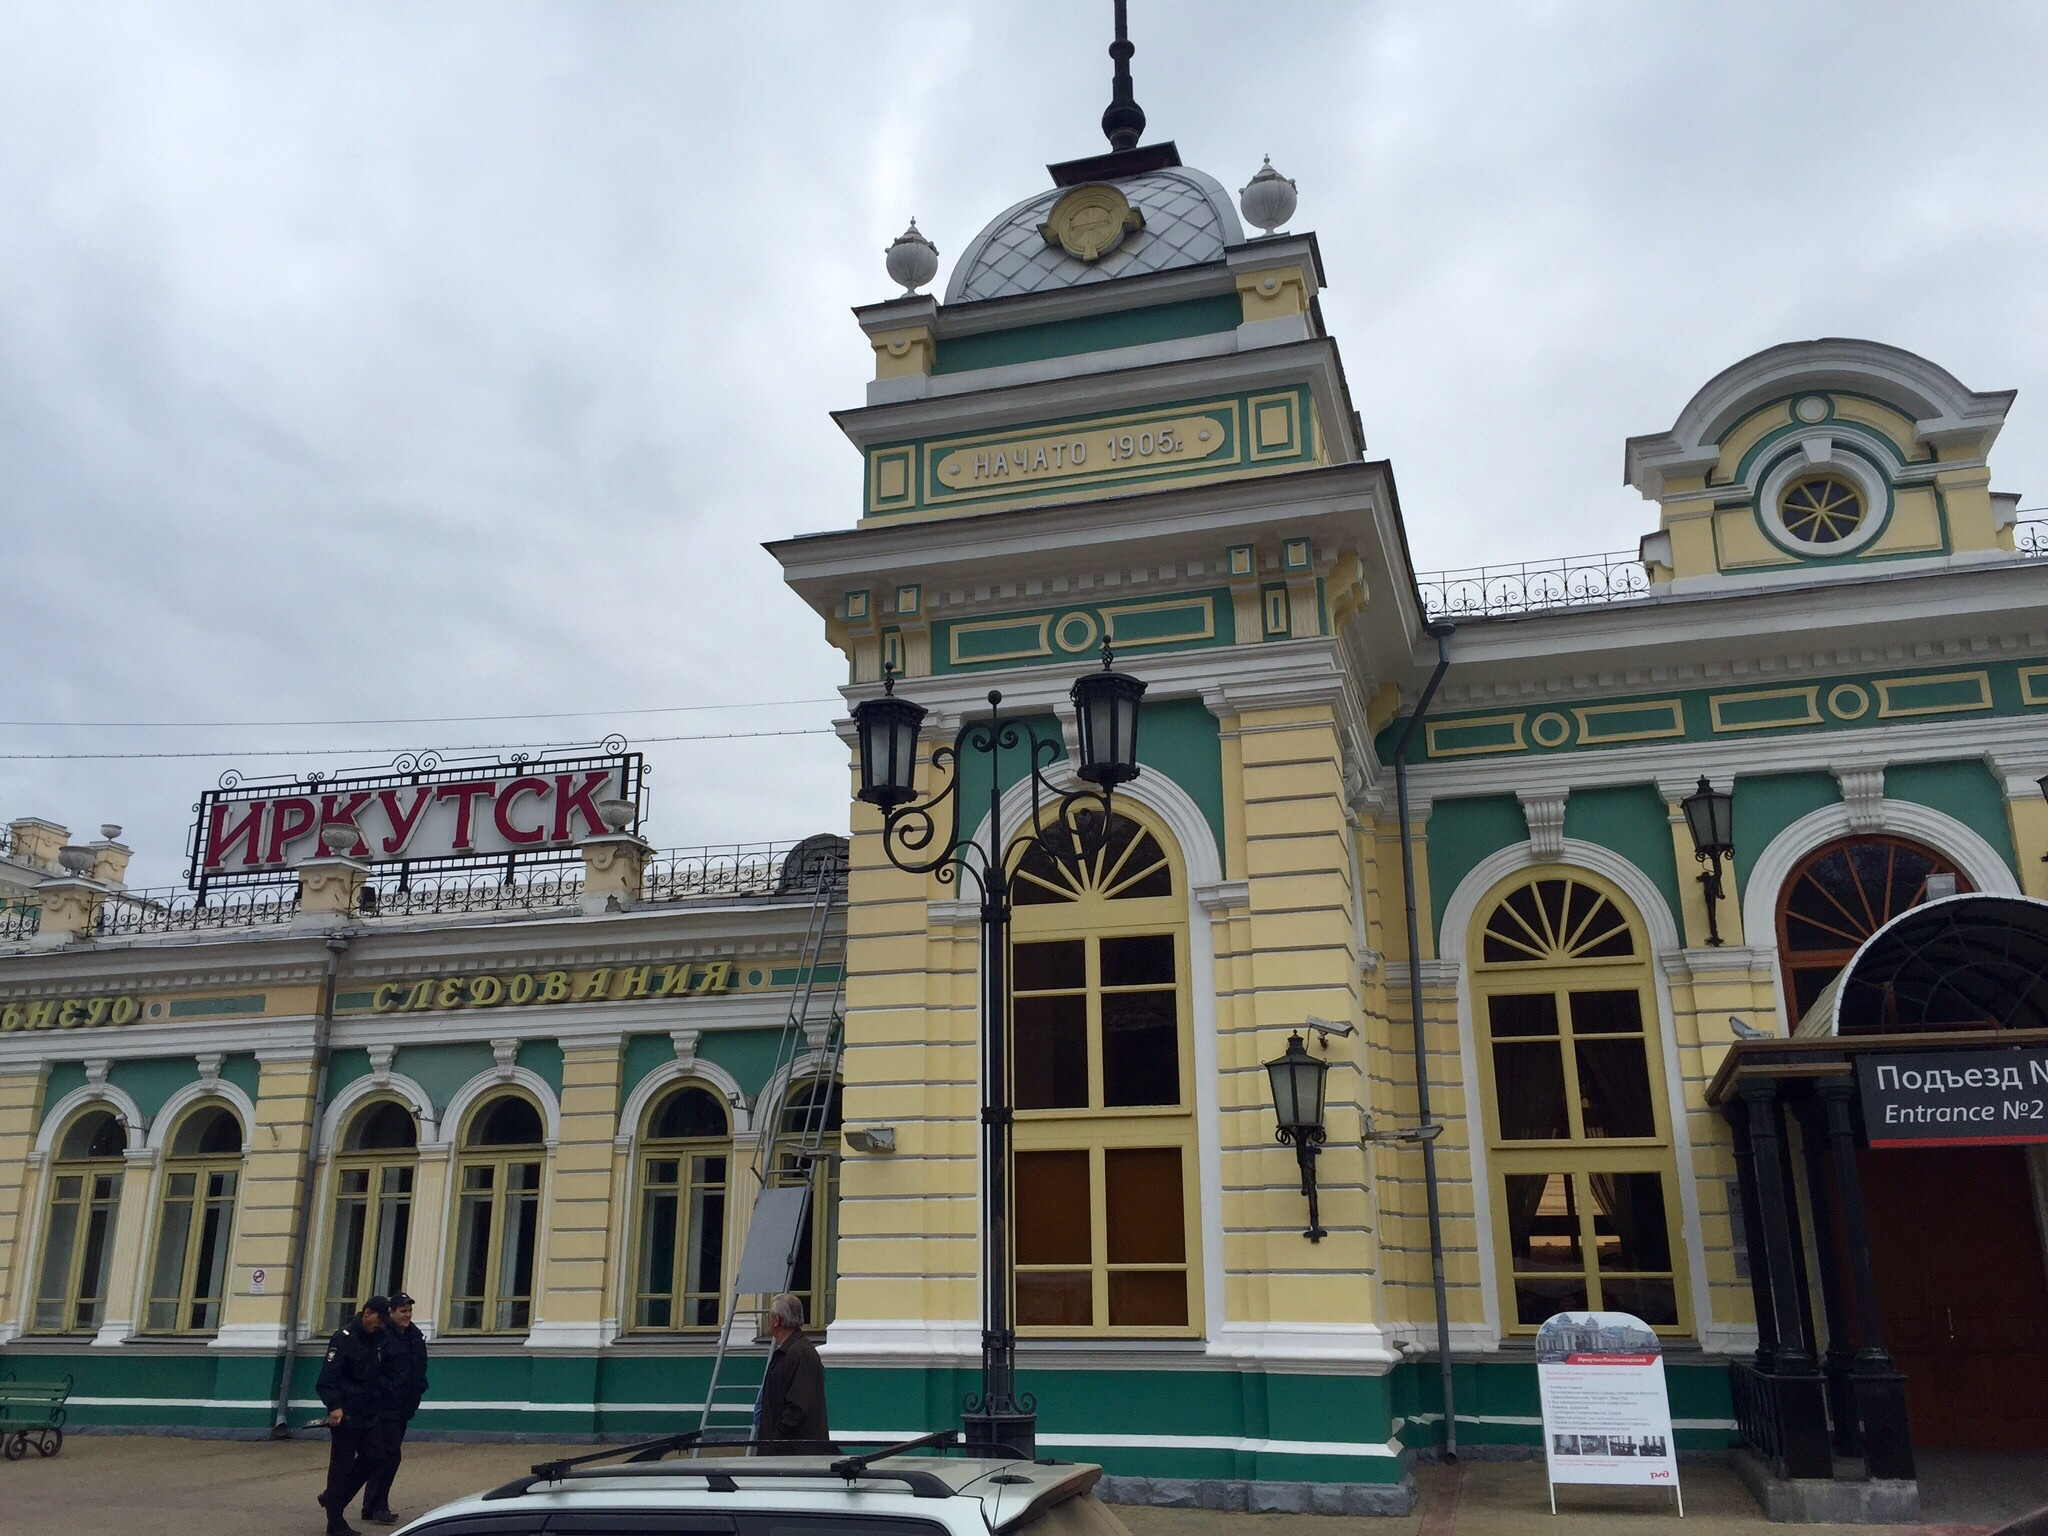 A shot of the train station from the street. Isn't it pretty?